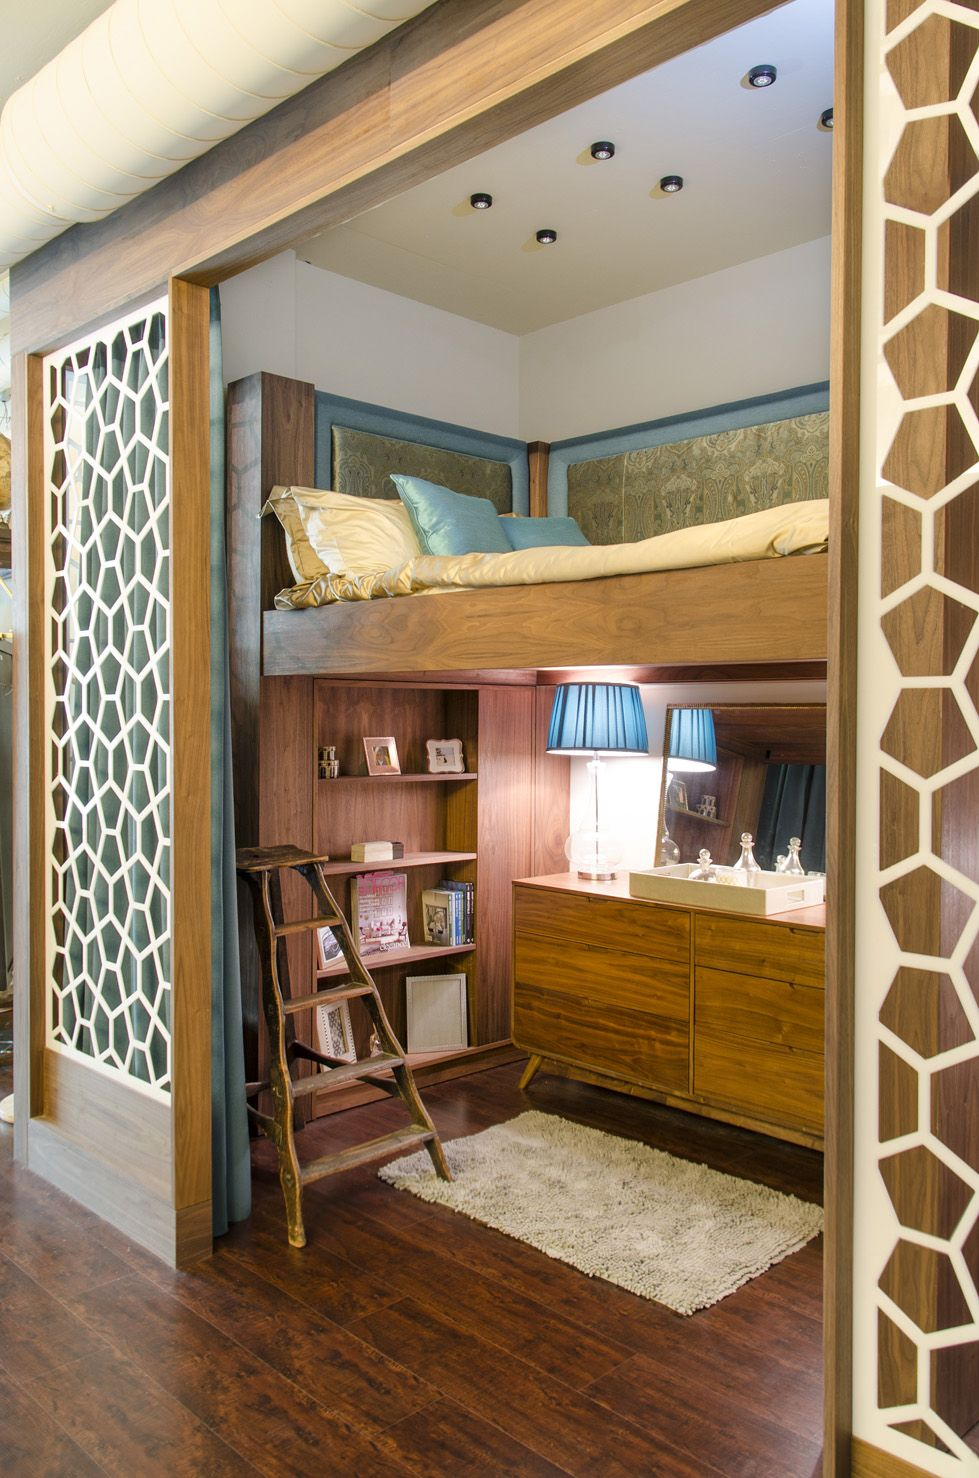 Built In Bedroom Furniture Designs Custom Walls Builtin Bed And Bookshelf For Lauri Howell Designs